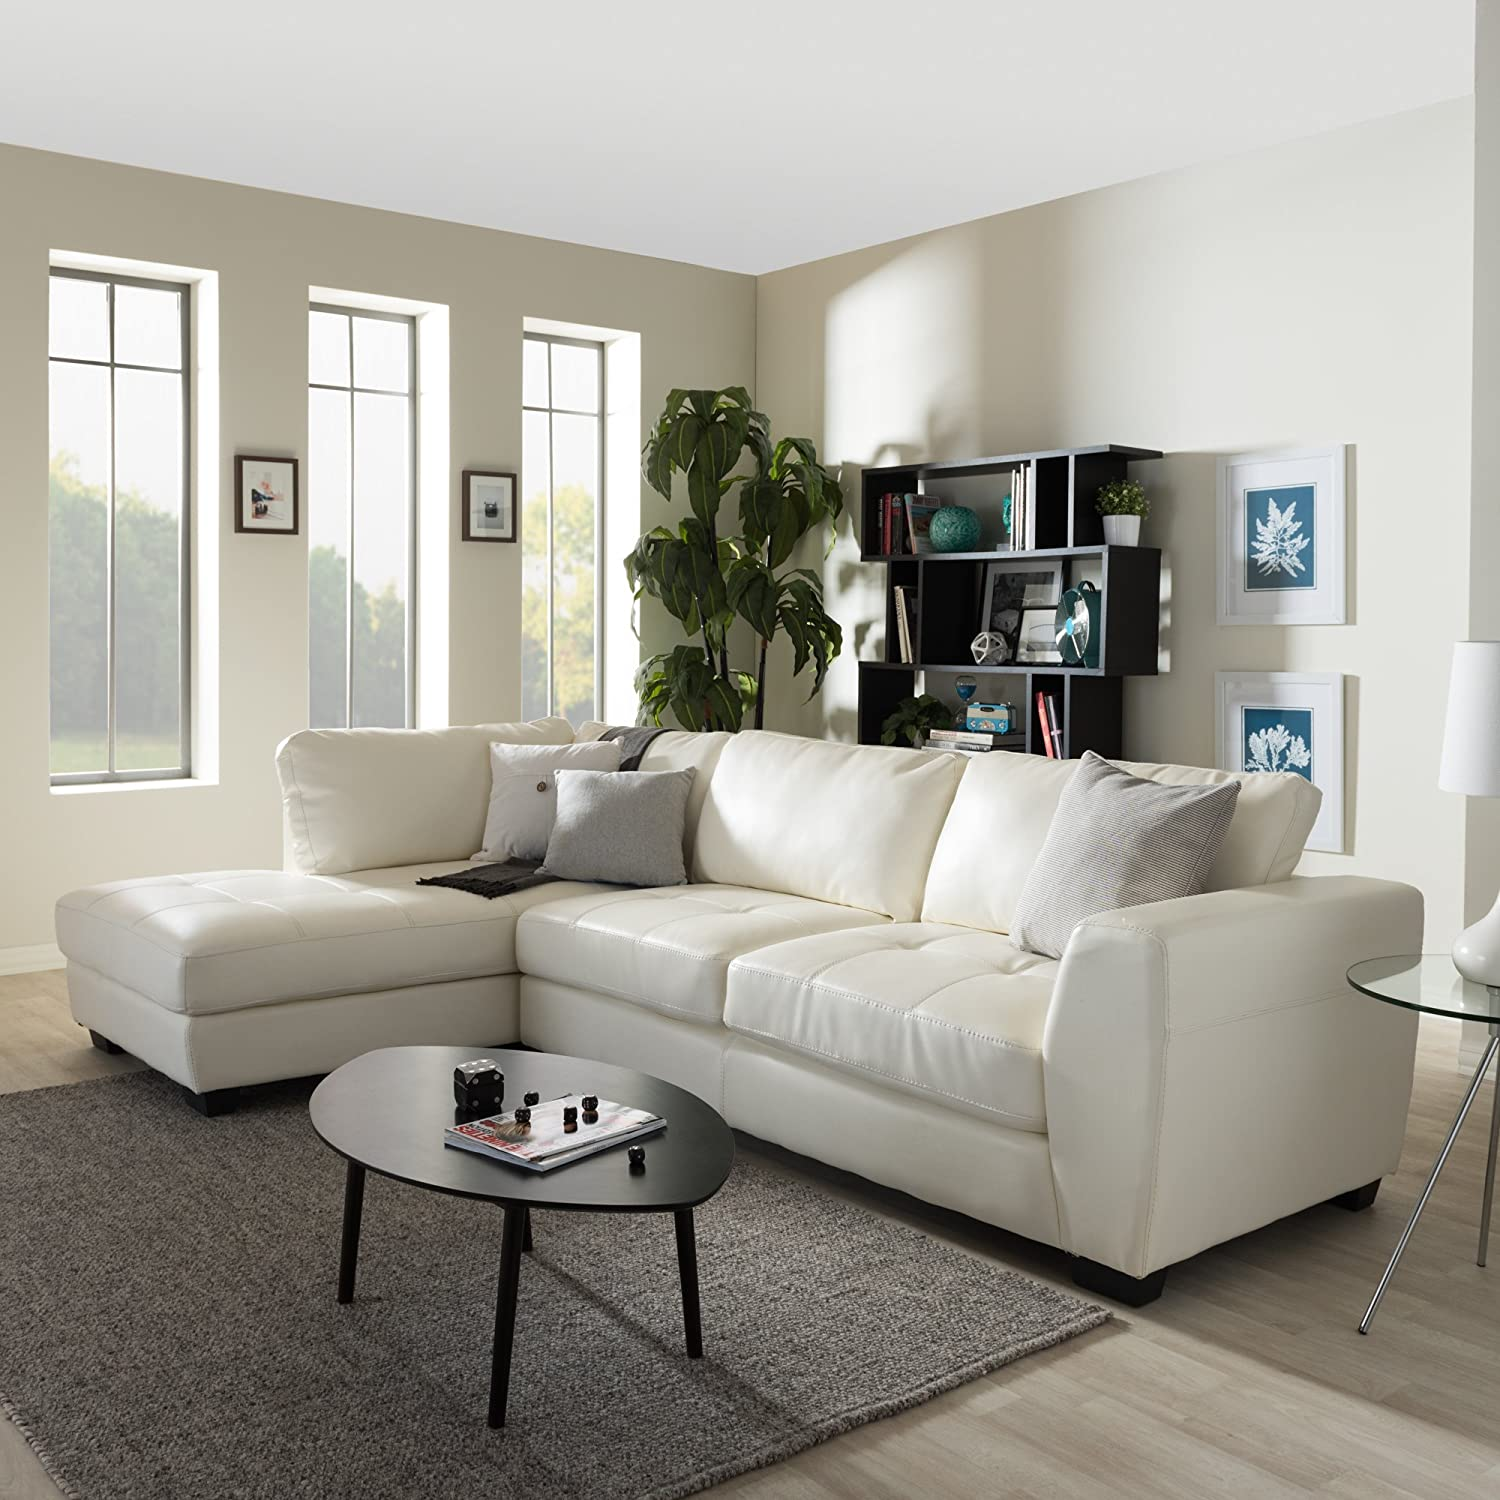 Amazon.com Baxton Studio Orland Leather Modern Sectional Sofa Set with Left Facing Chaise White Kitchen u0026 Dining : sectional modern - Sectionals, Sofas & Couches